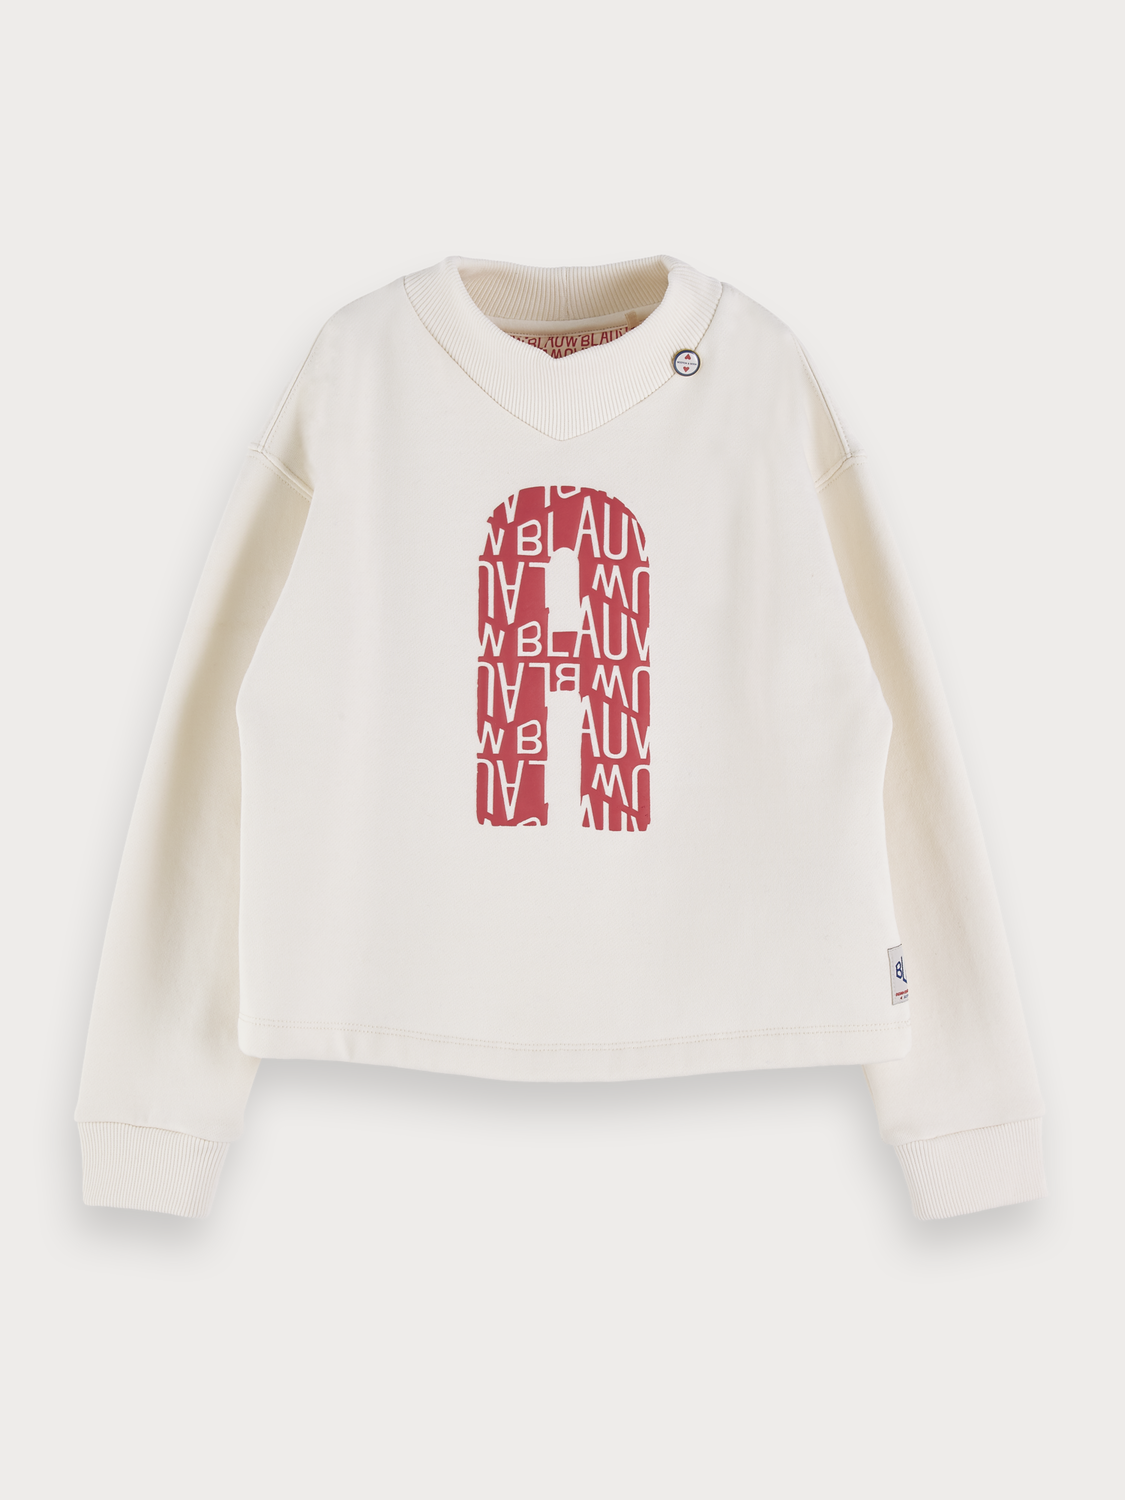 Girls Blauw Artwork Sweater